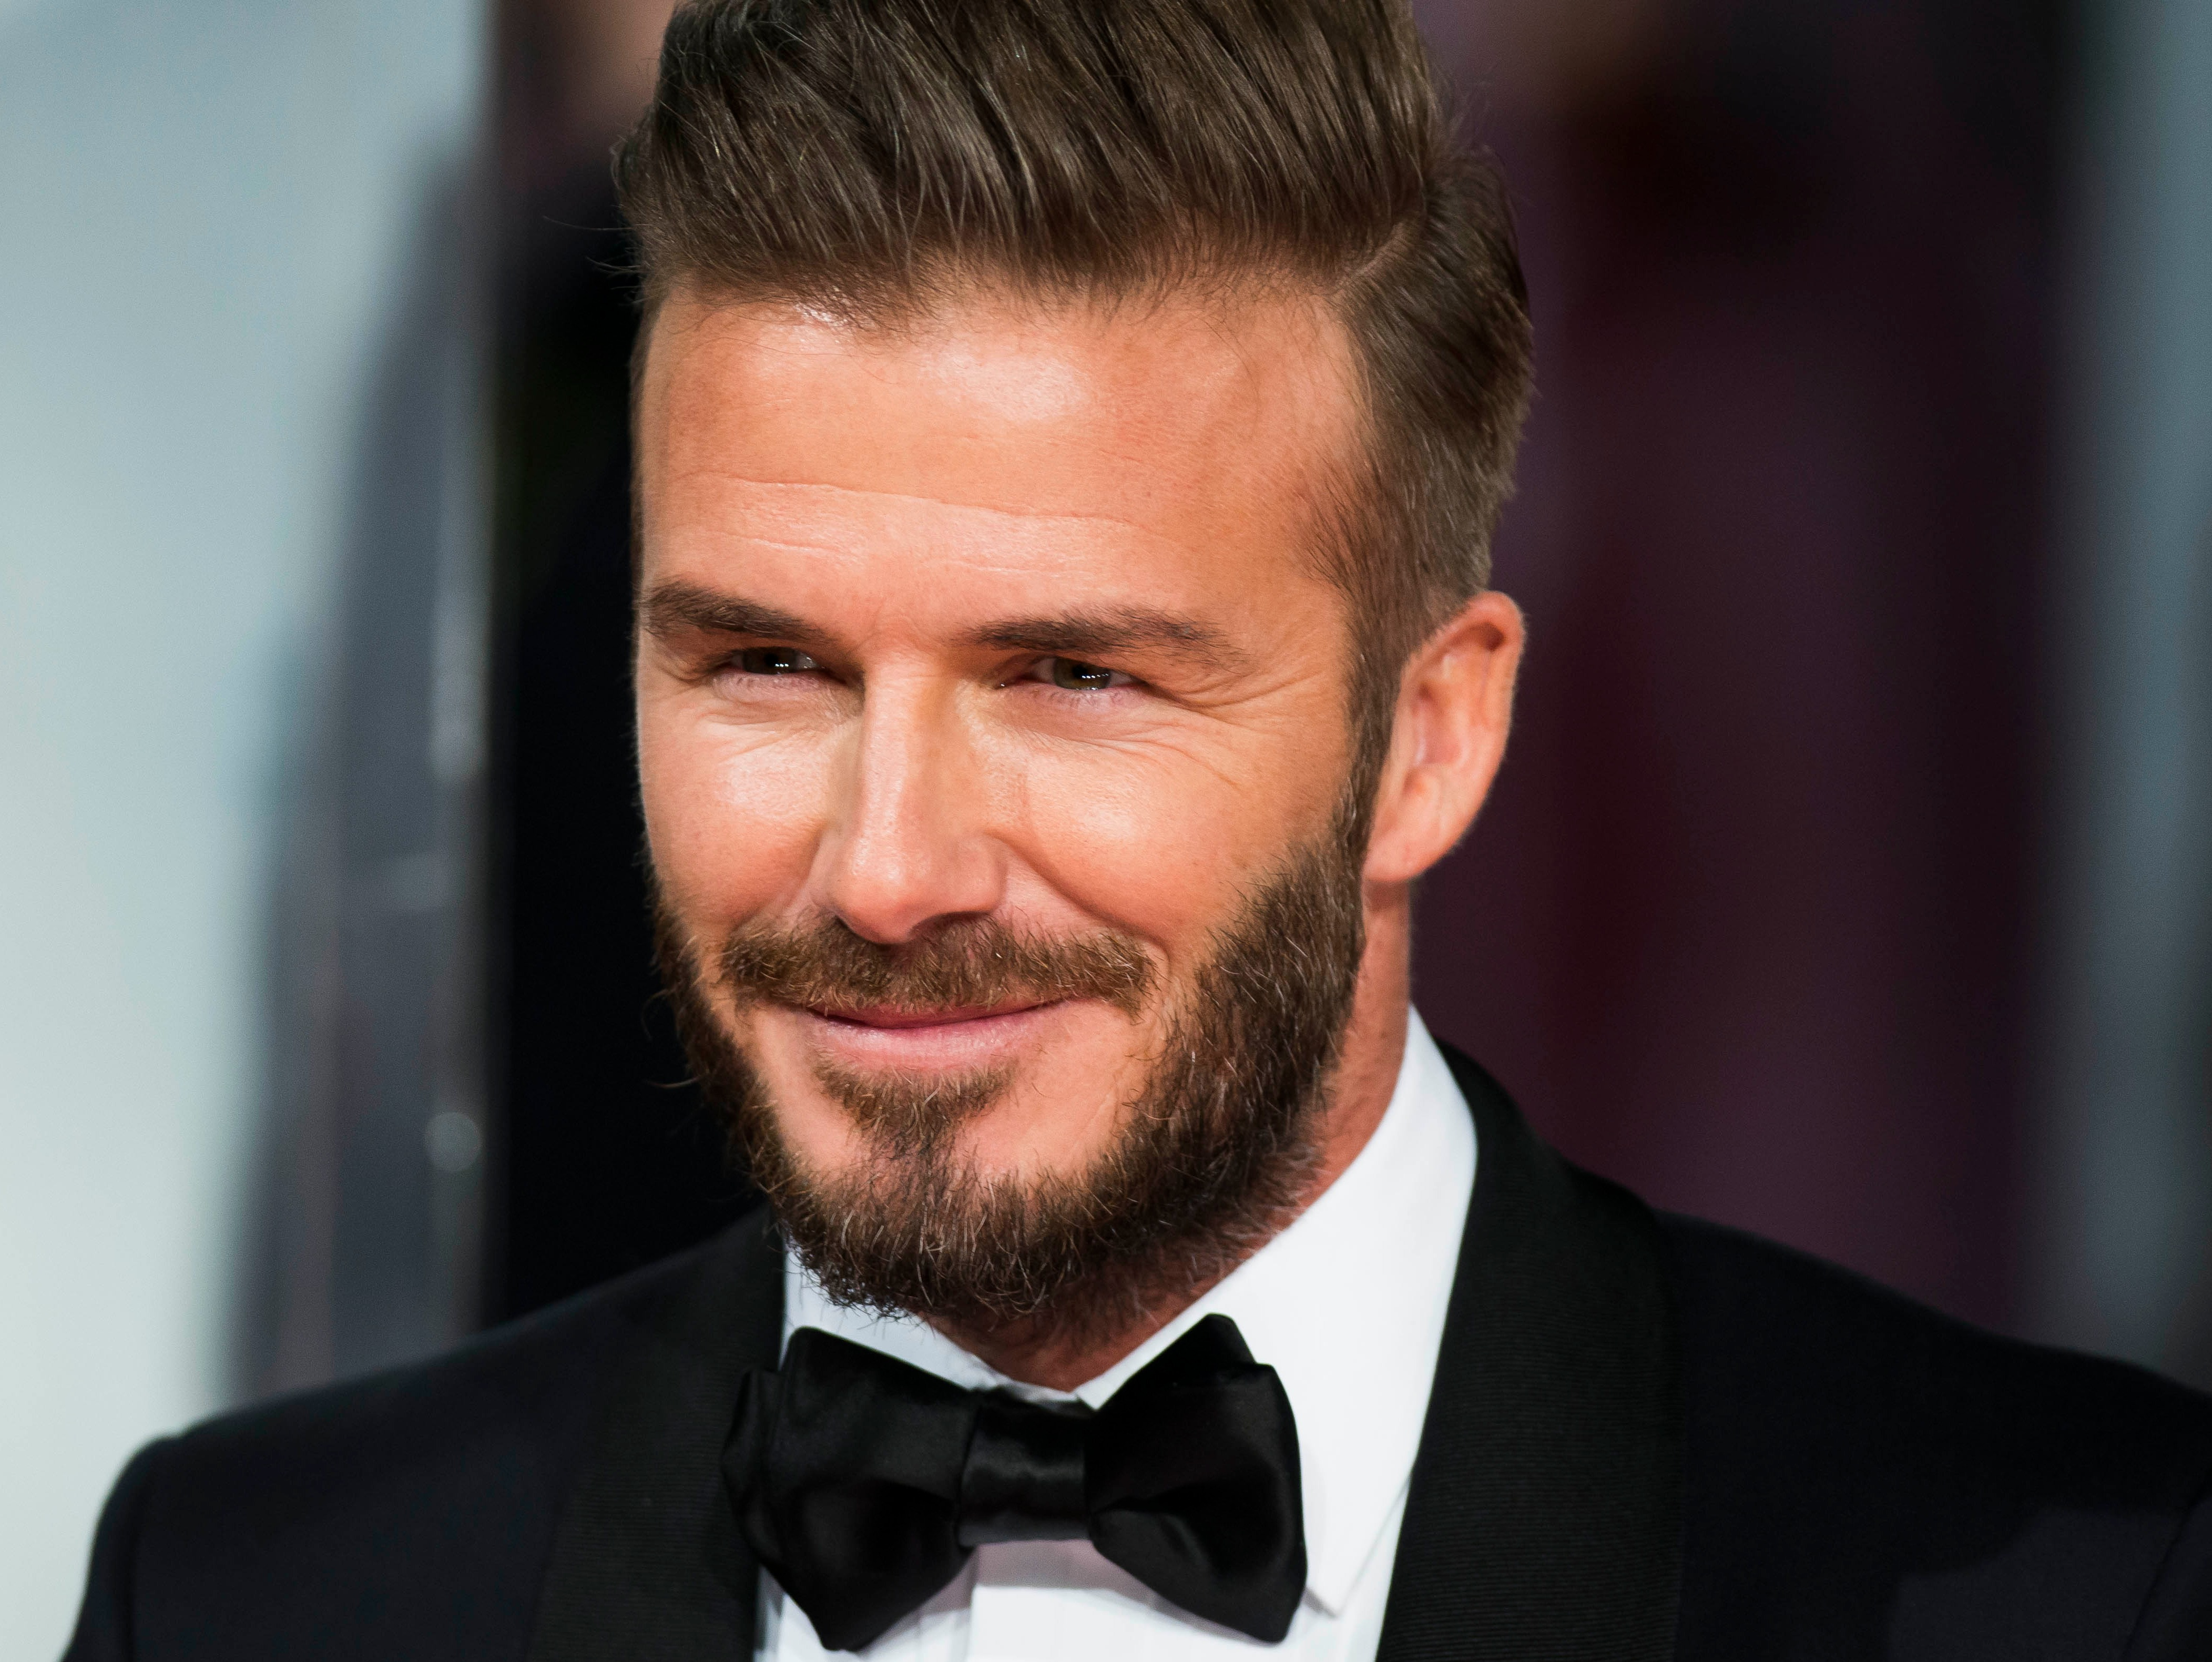 David beckham has 39 promising career as an actor 39 says his - David beckham ...